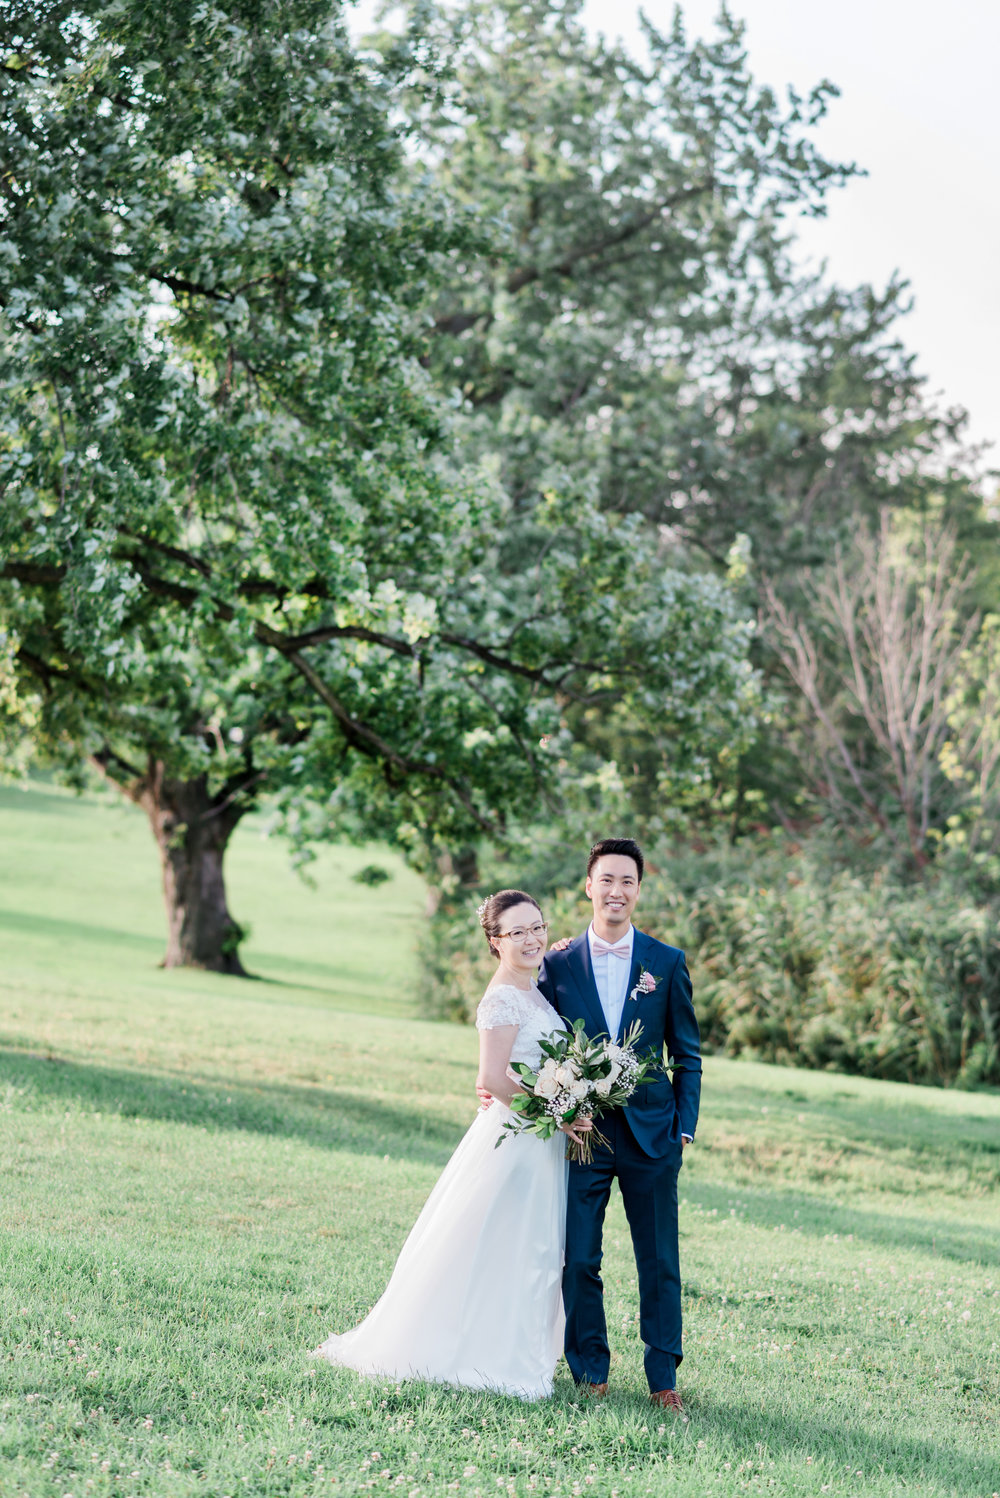 BLUUMBLVD white and green bouquet at the Riverdale Park Toronto-13.jpg